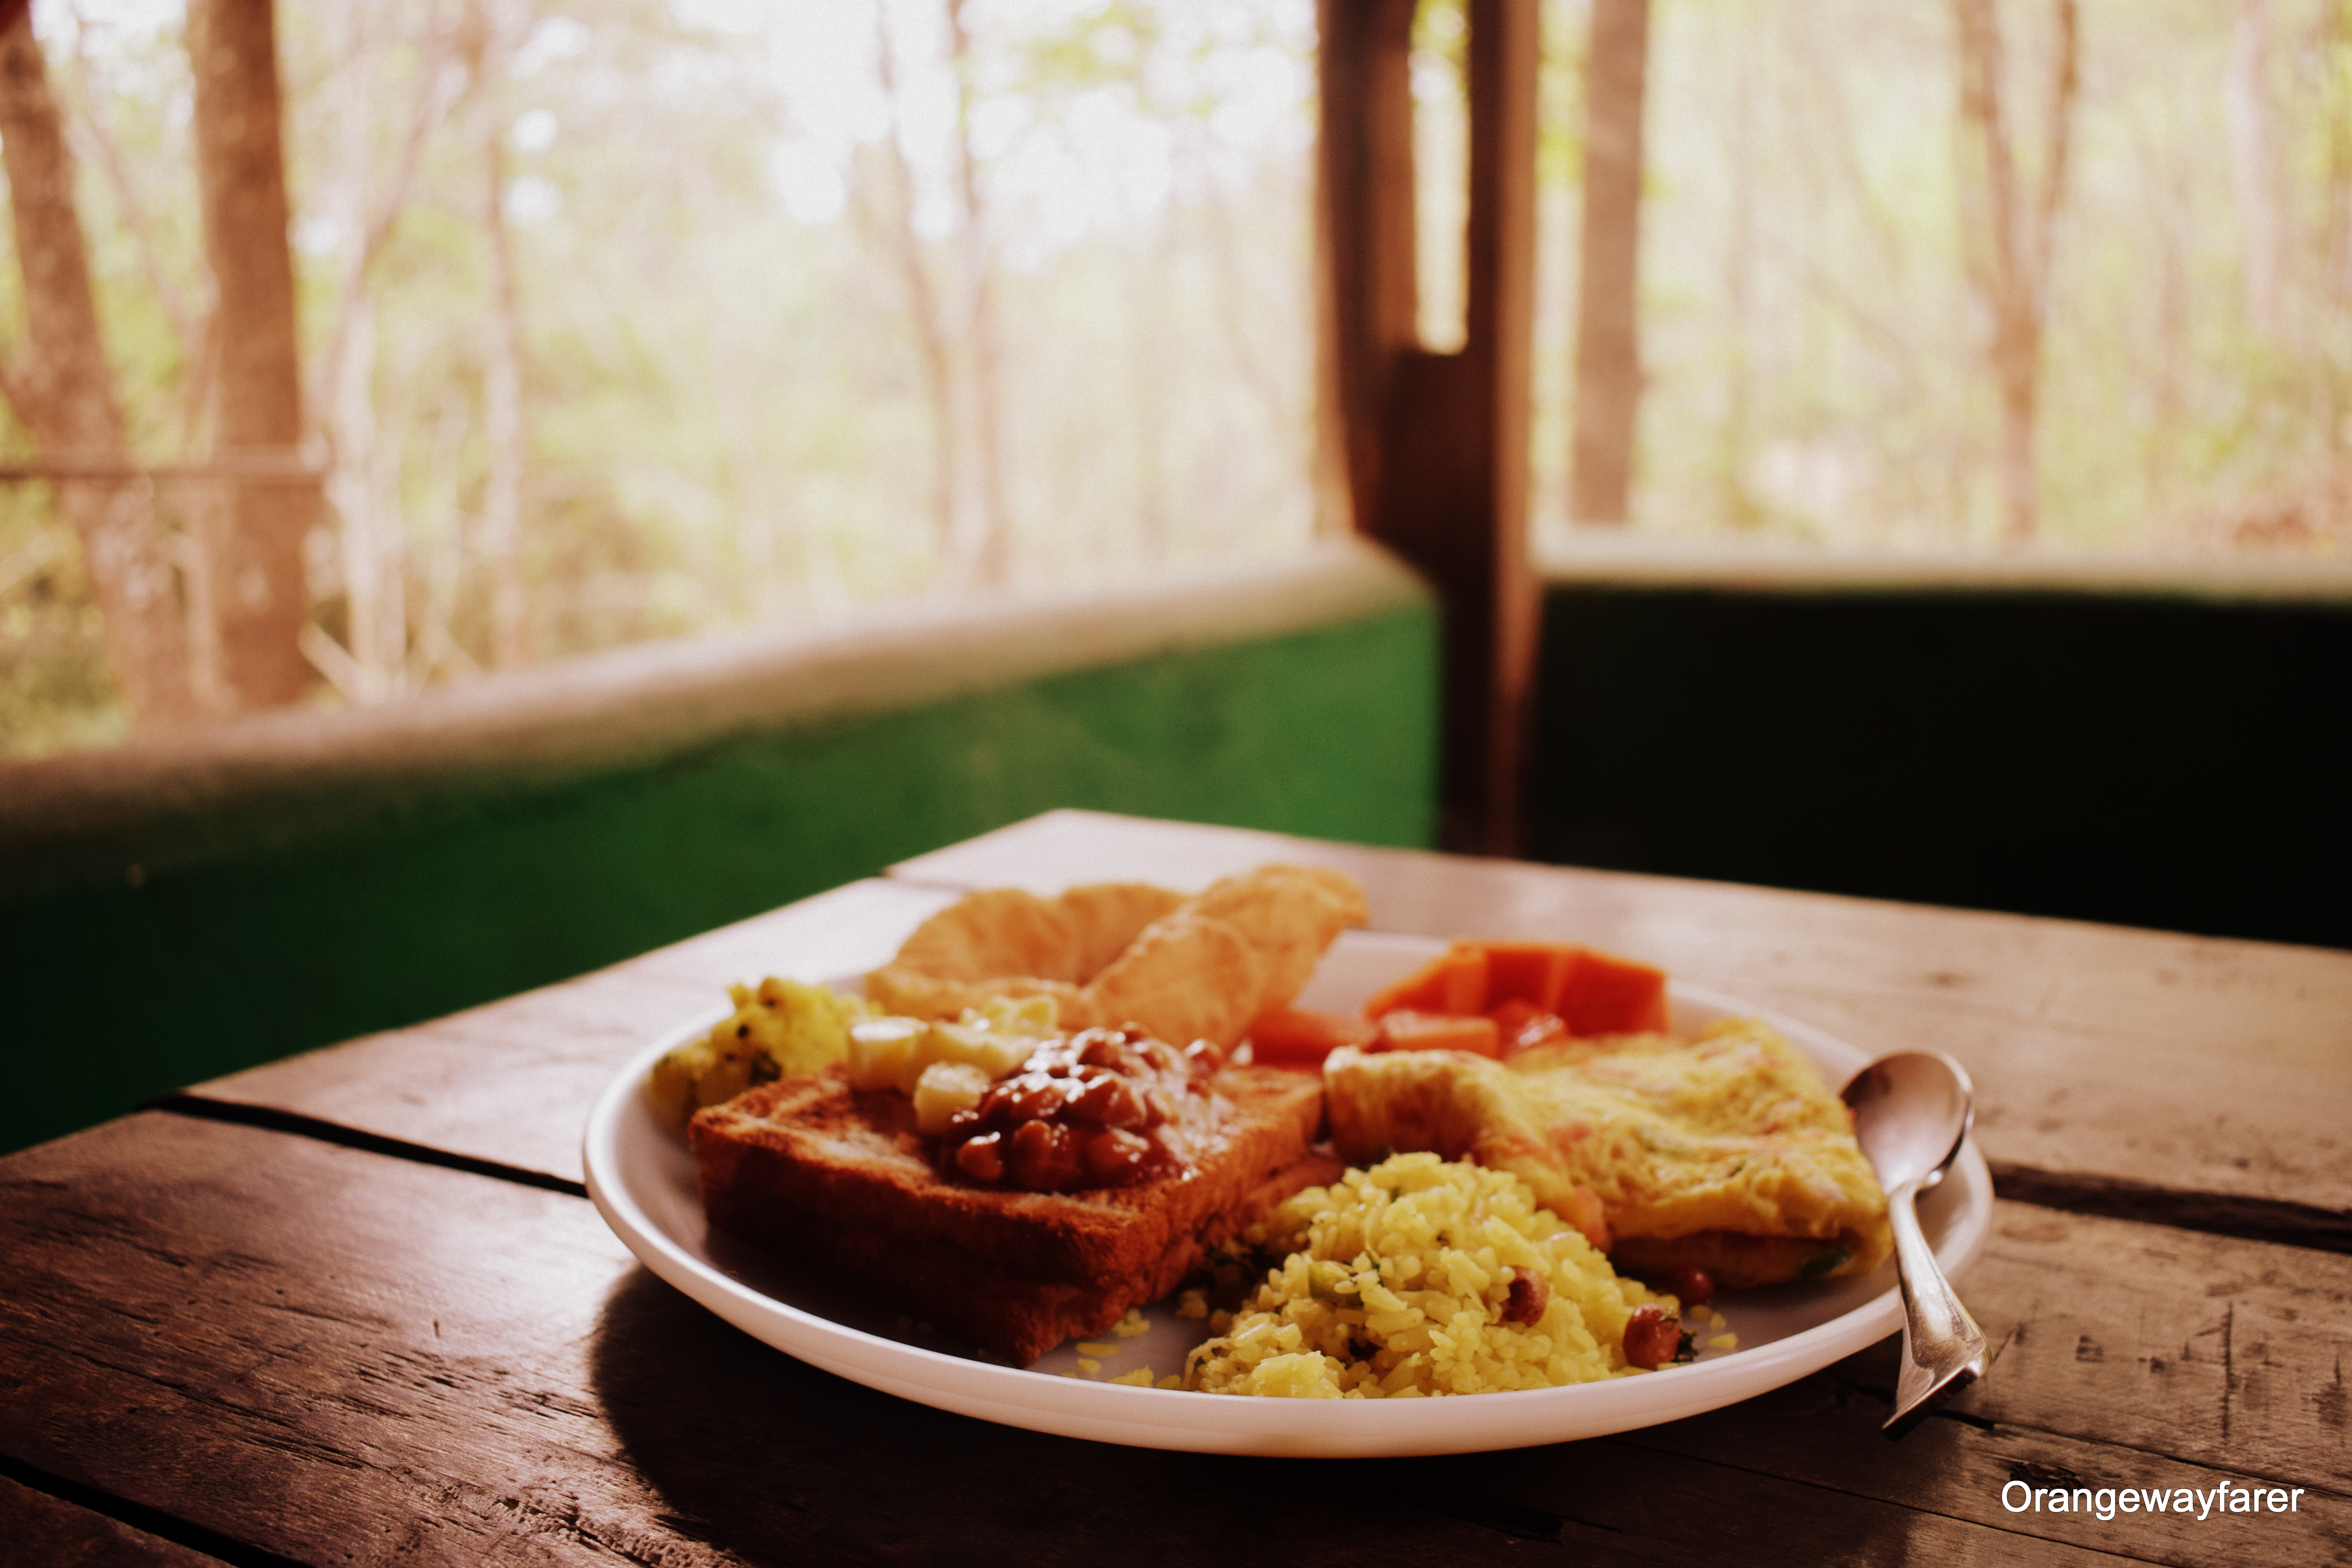 Breakfast at Old Magazine House, dandeli